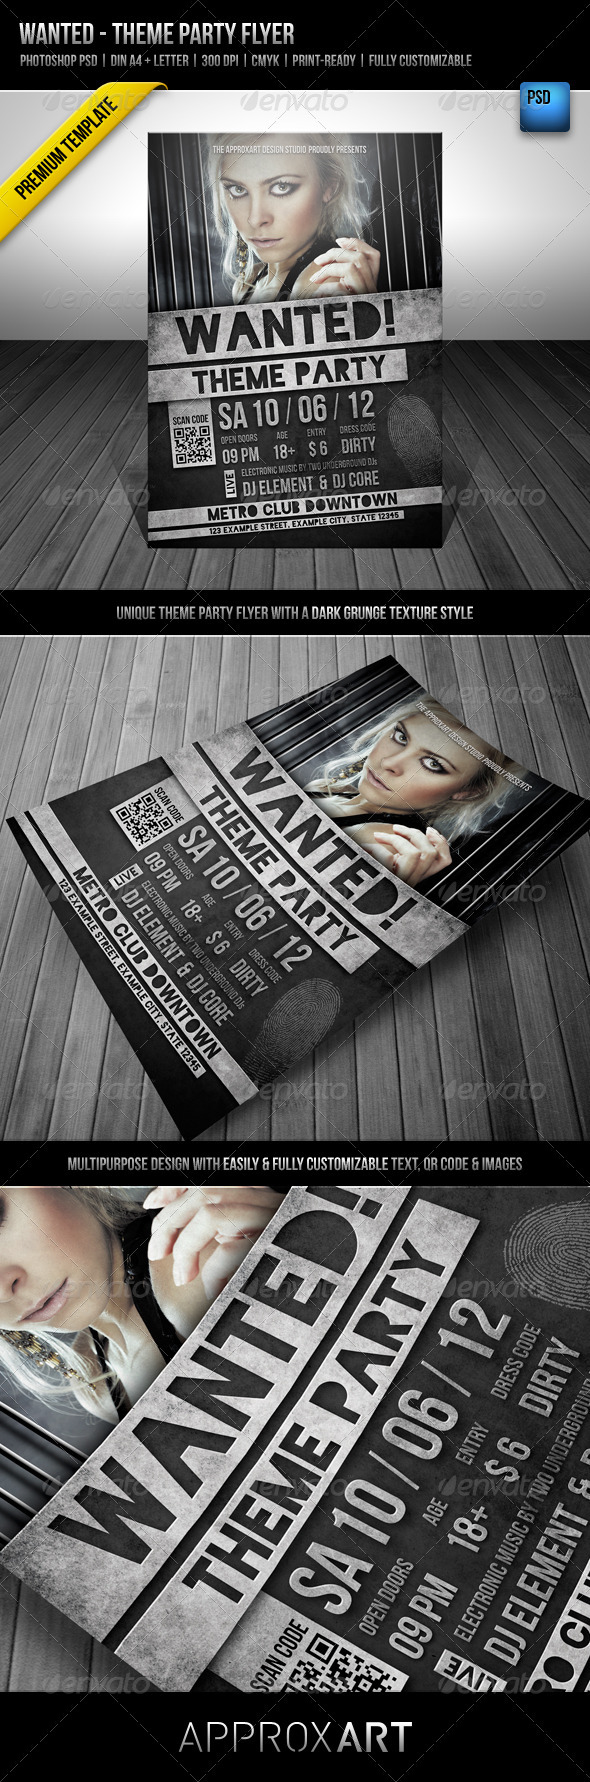 Wanted - Theme Party Flyer - Clubs & Parties Events